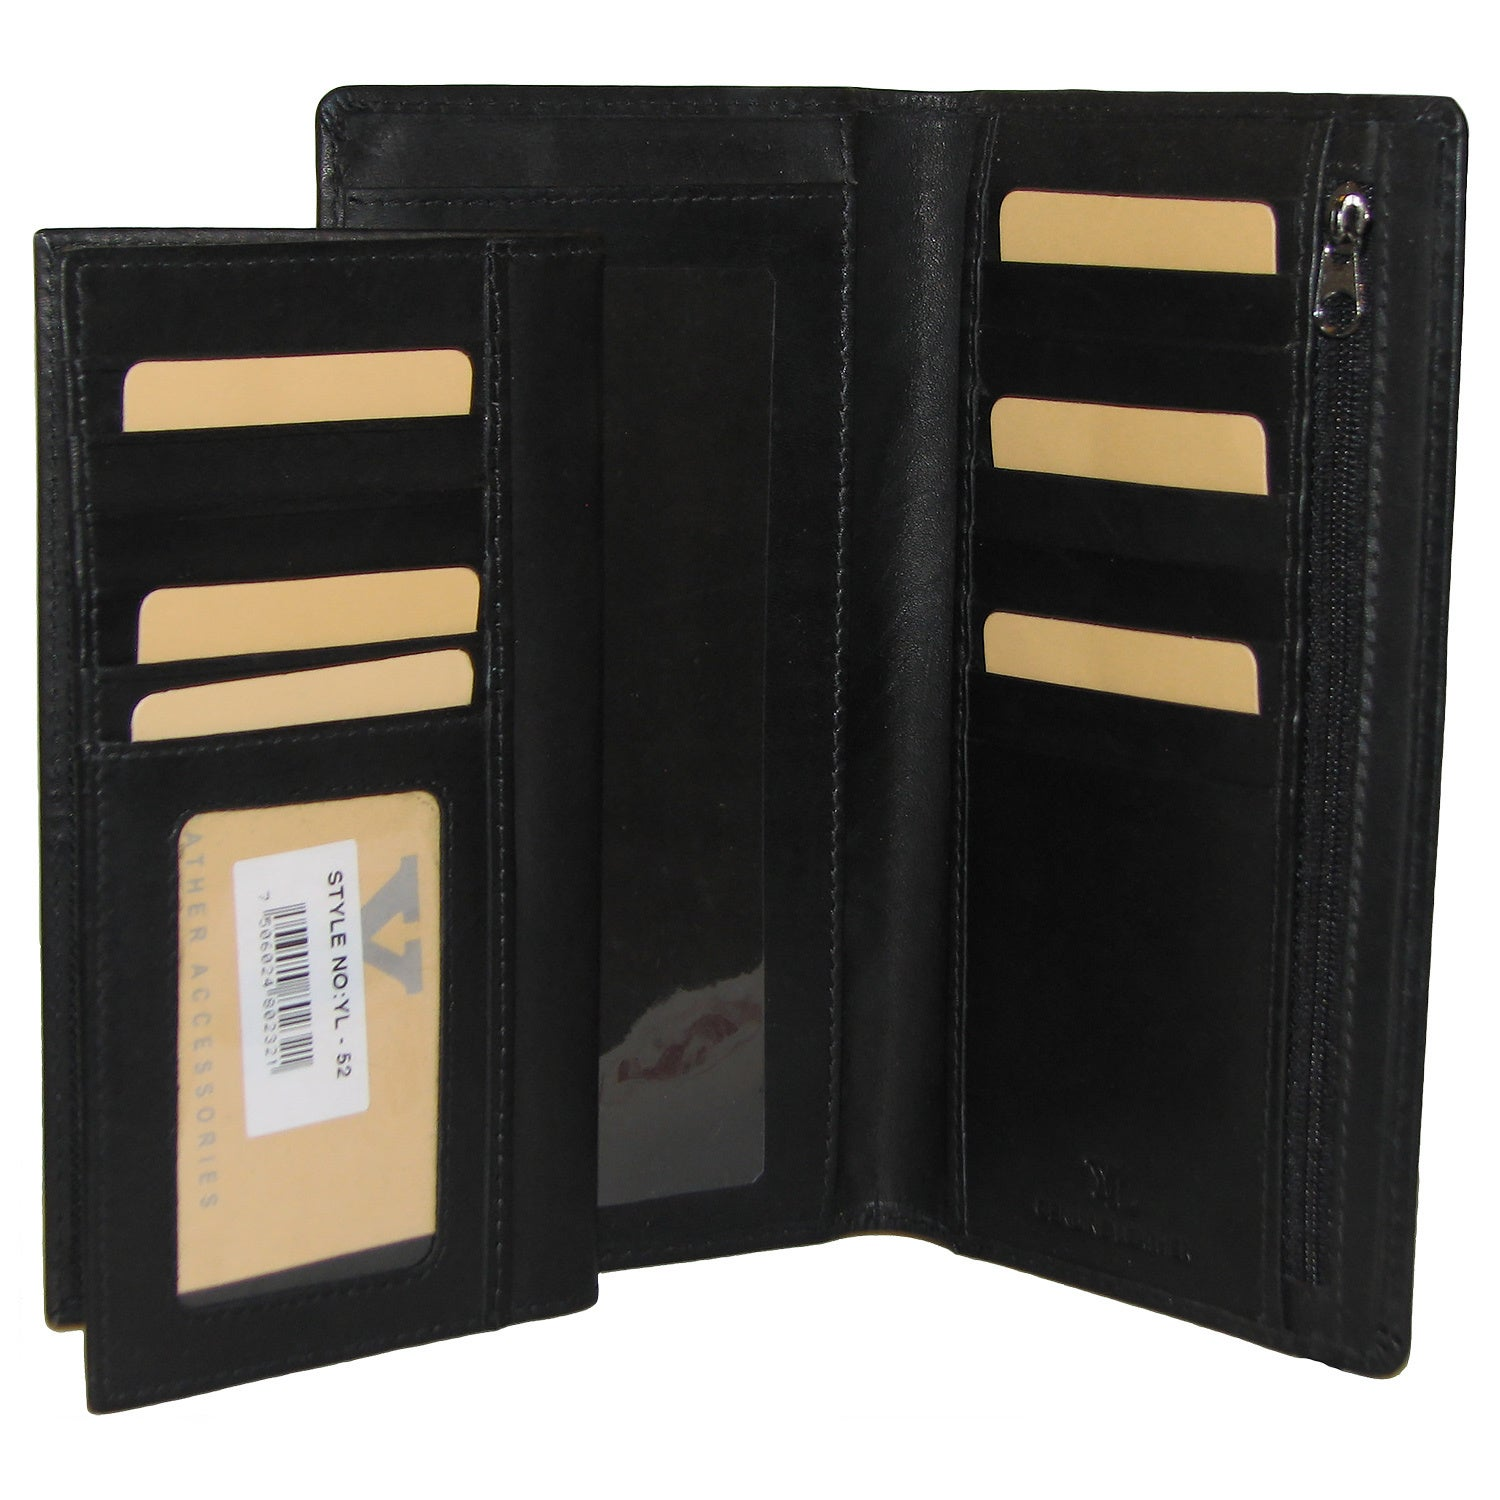 All-in-1 Genuine Leather Wallet  Card Case Holder  Removable Checkbook   Register Pocket Secretary - Large 3073906e846e